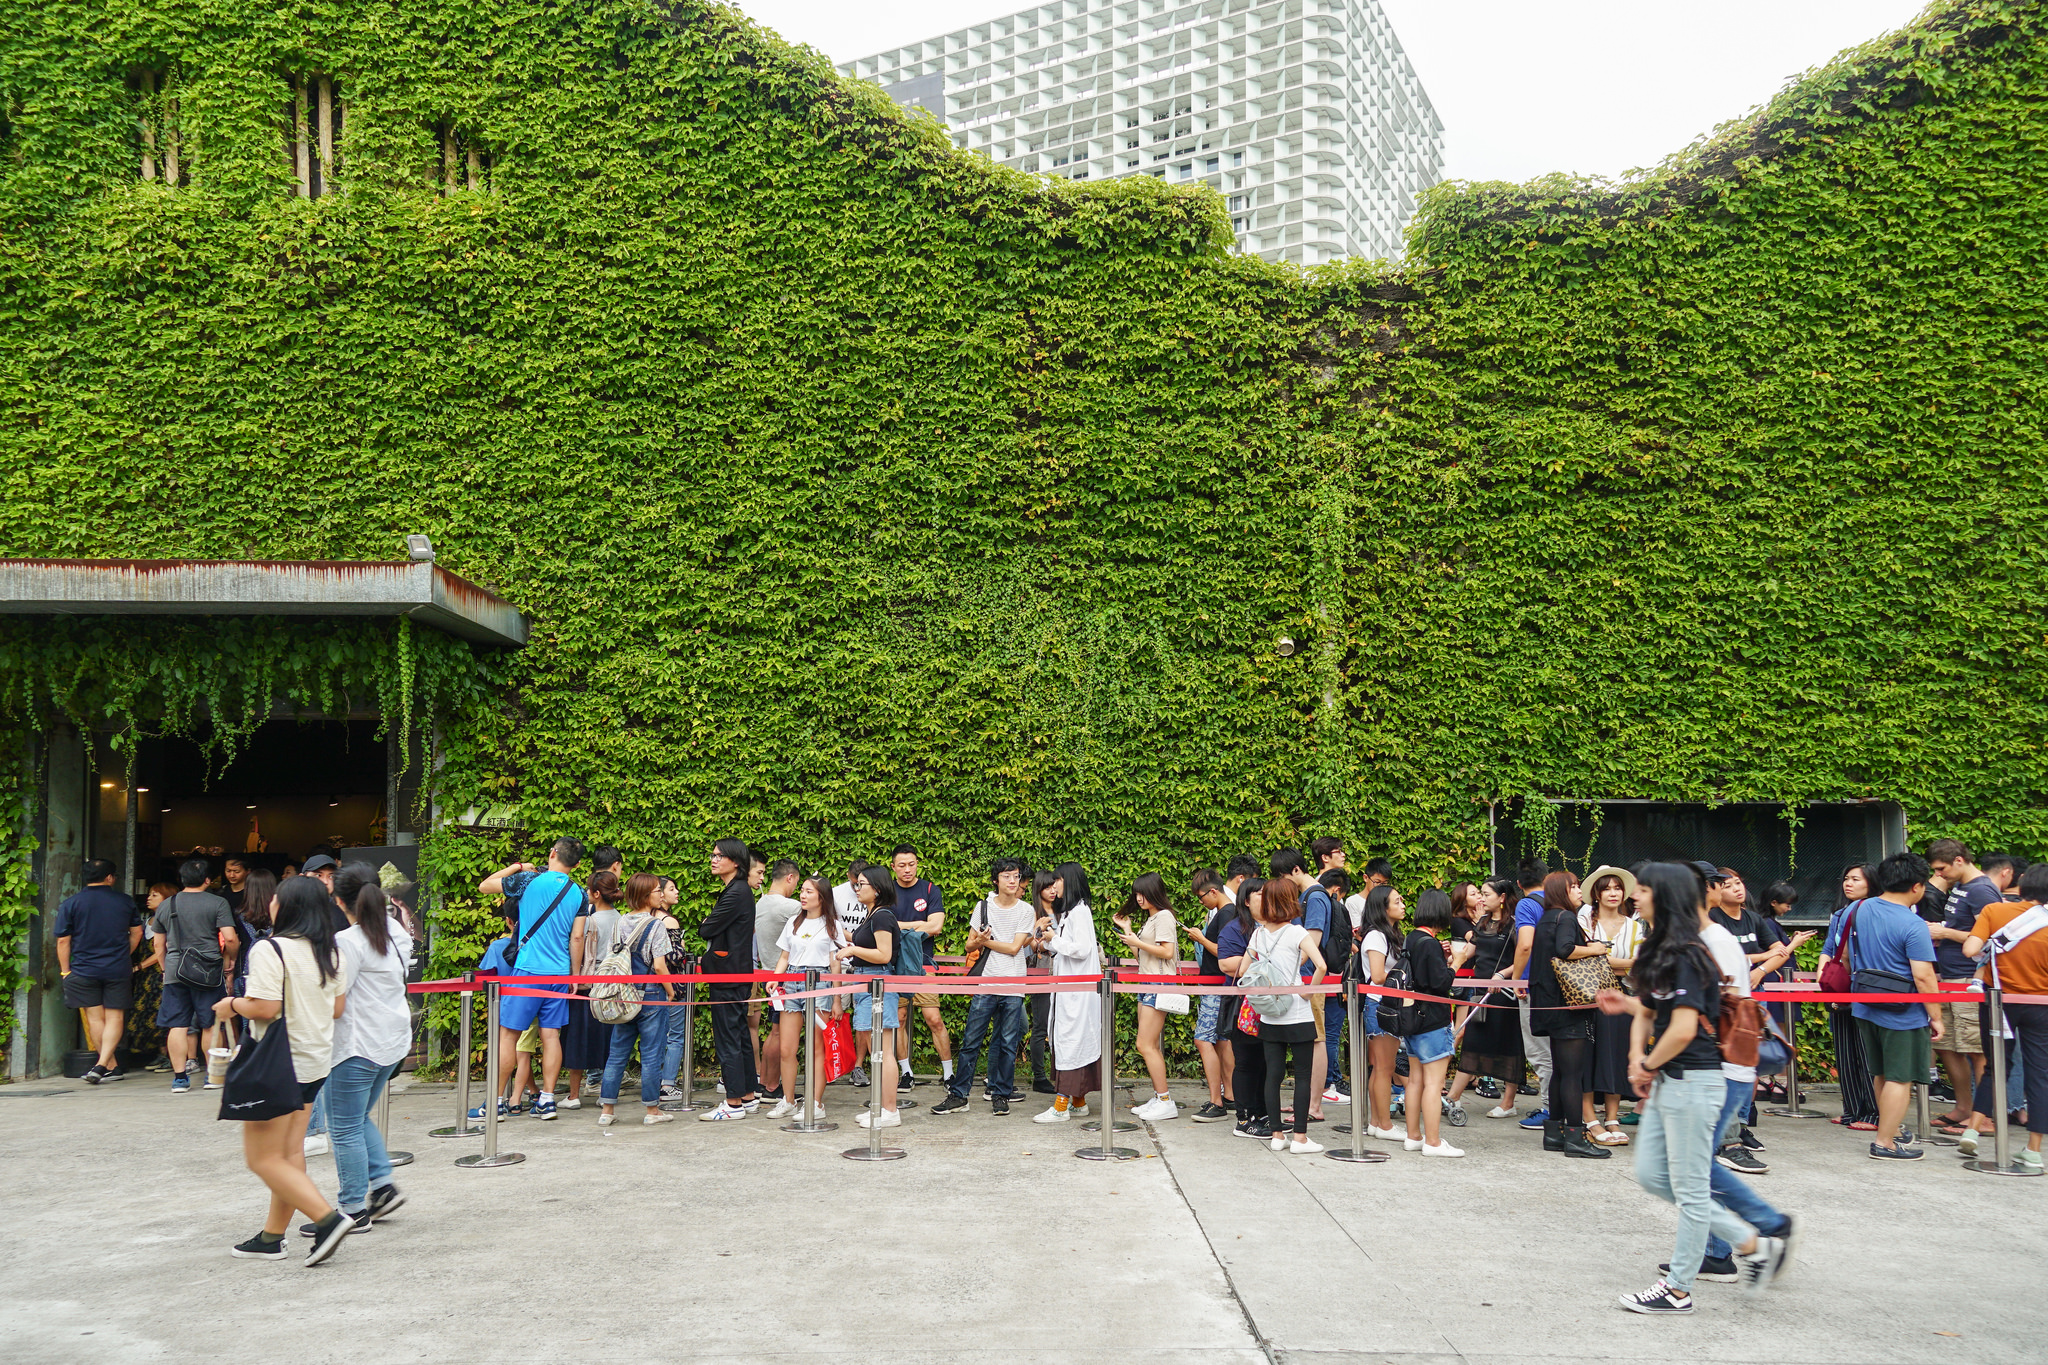 Visitors wait in line for an exhibit in this Former Sake winery turned art space; complete with cinema, galleries, cafes, a microbrewery and gift shops.